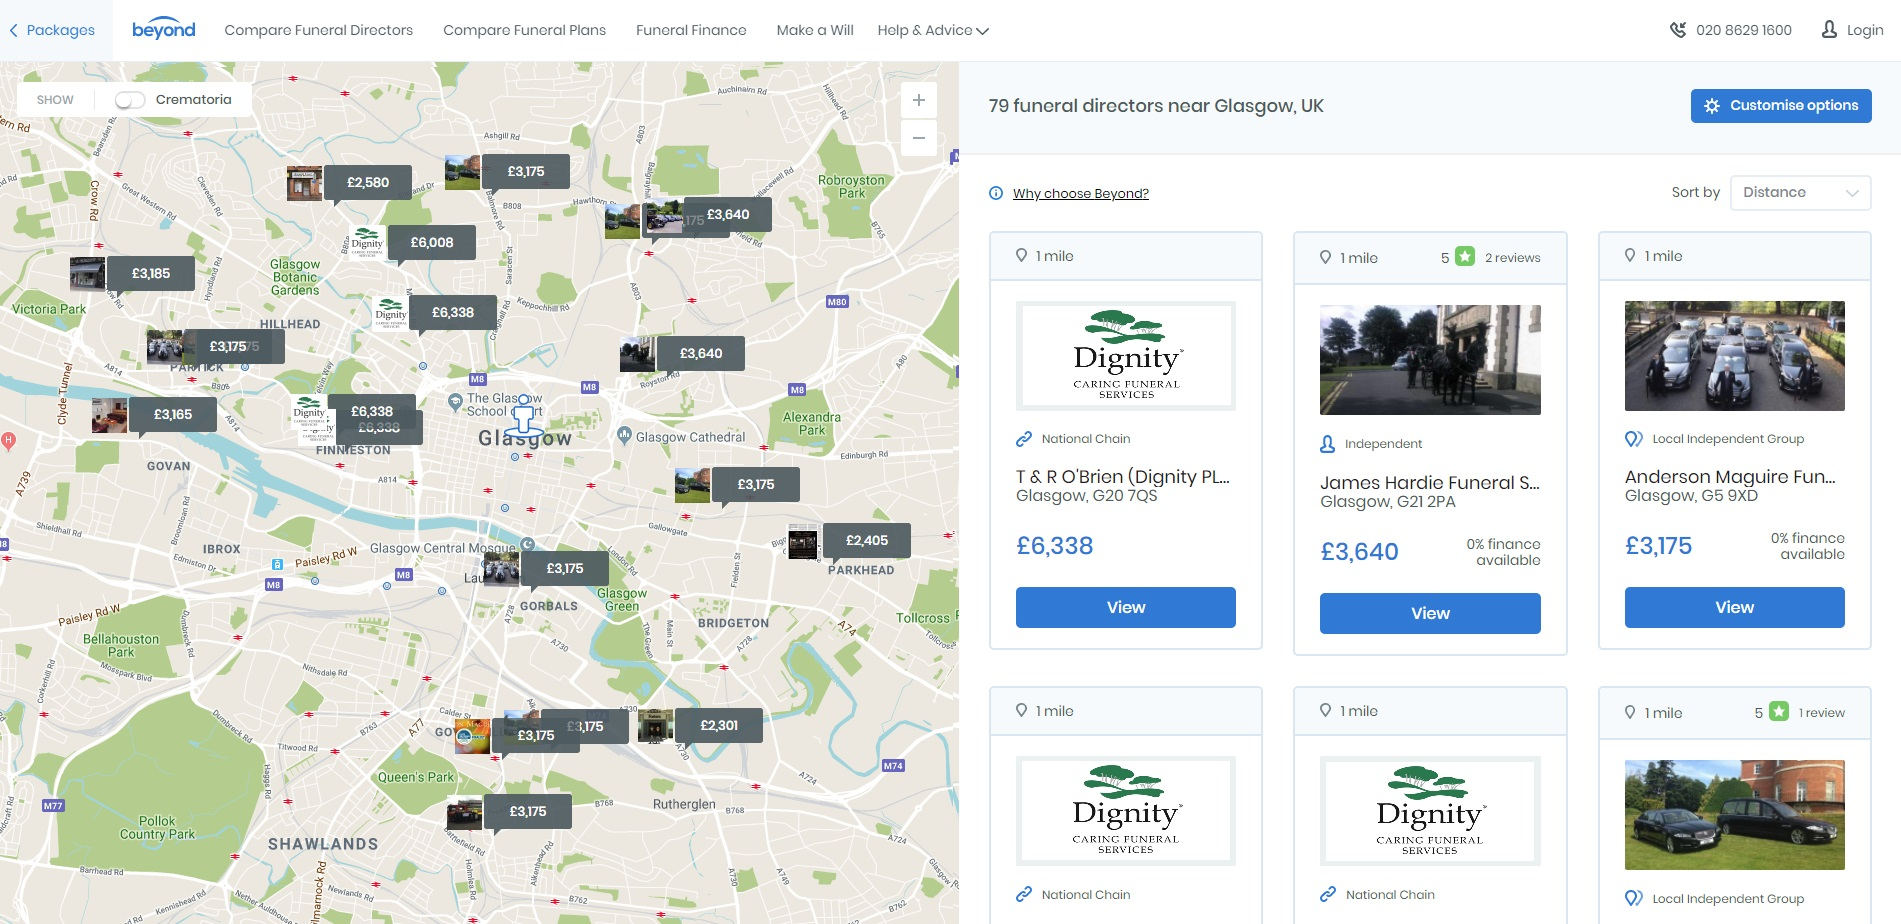 Funeral Prices in Glasgow - screenshot from www.beyond.life